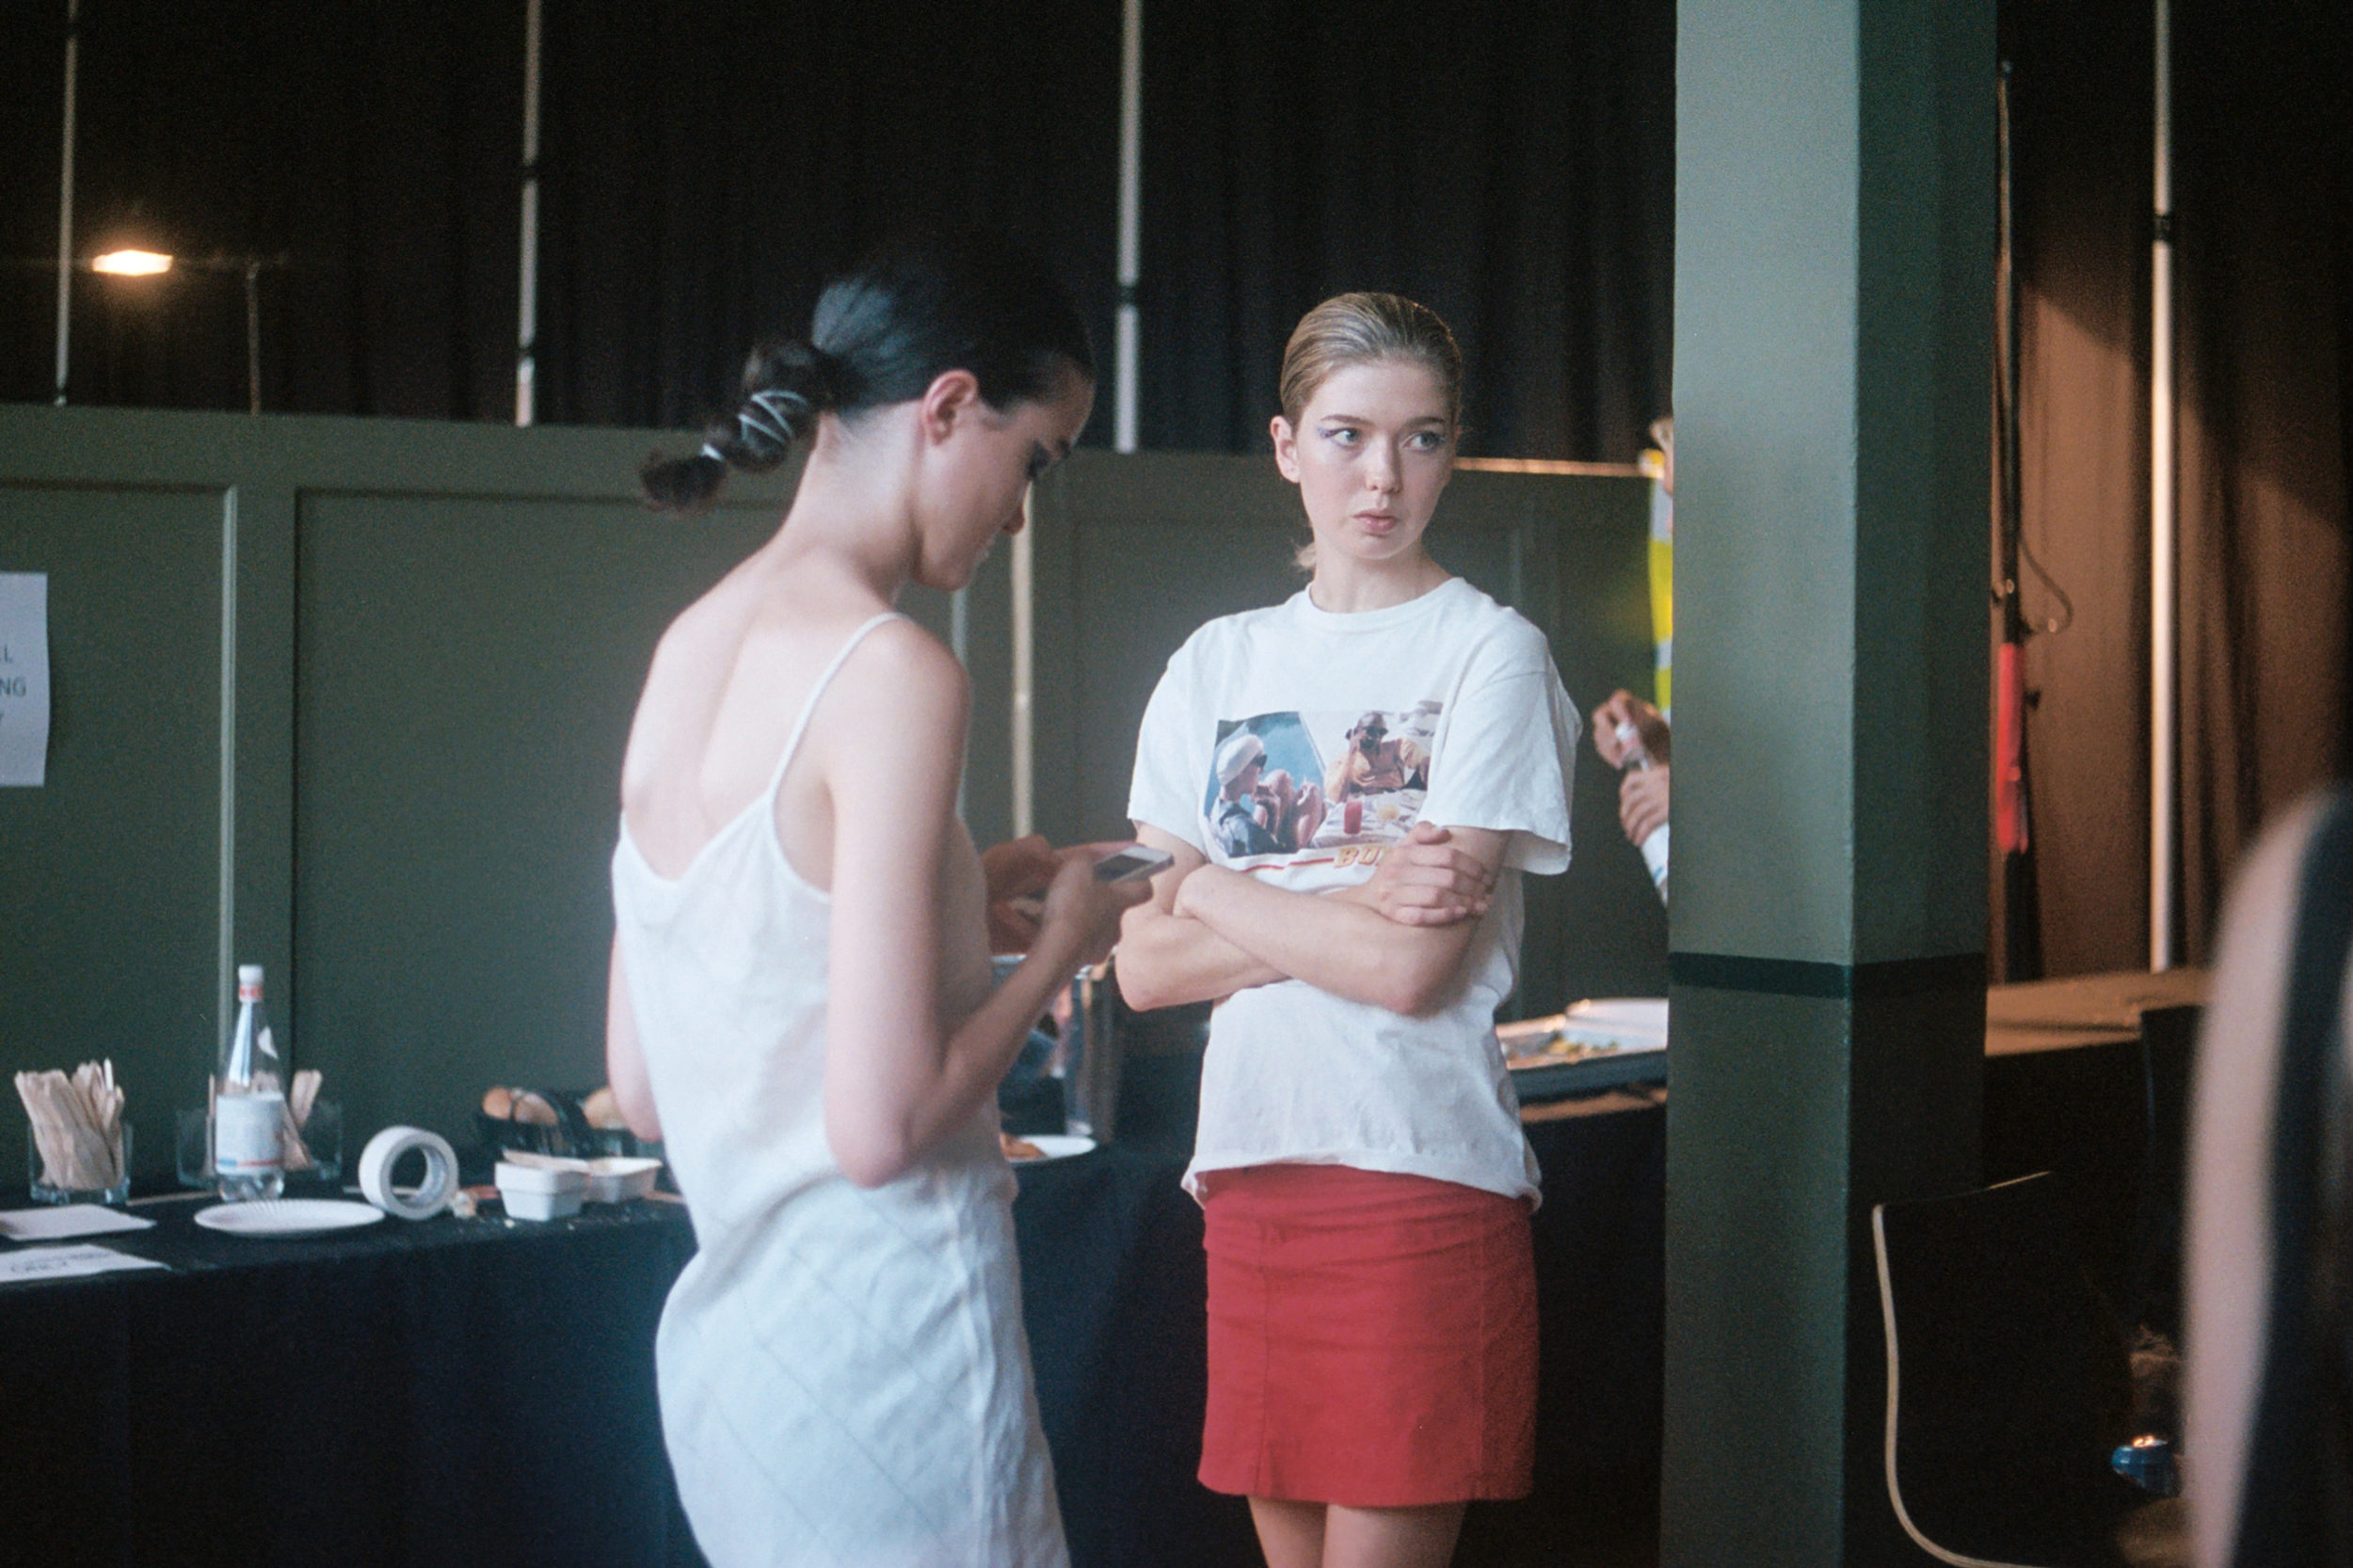 Two models wait post hair and make up for the runway to begin.